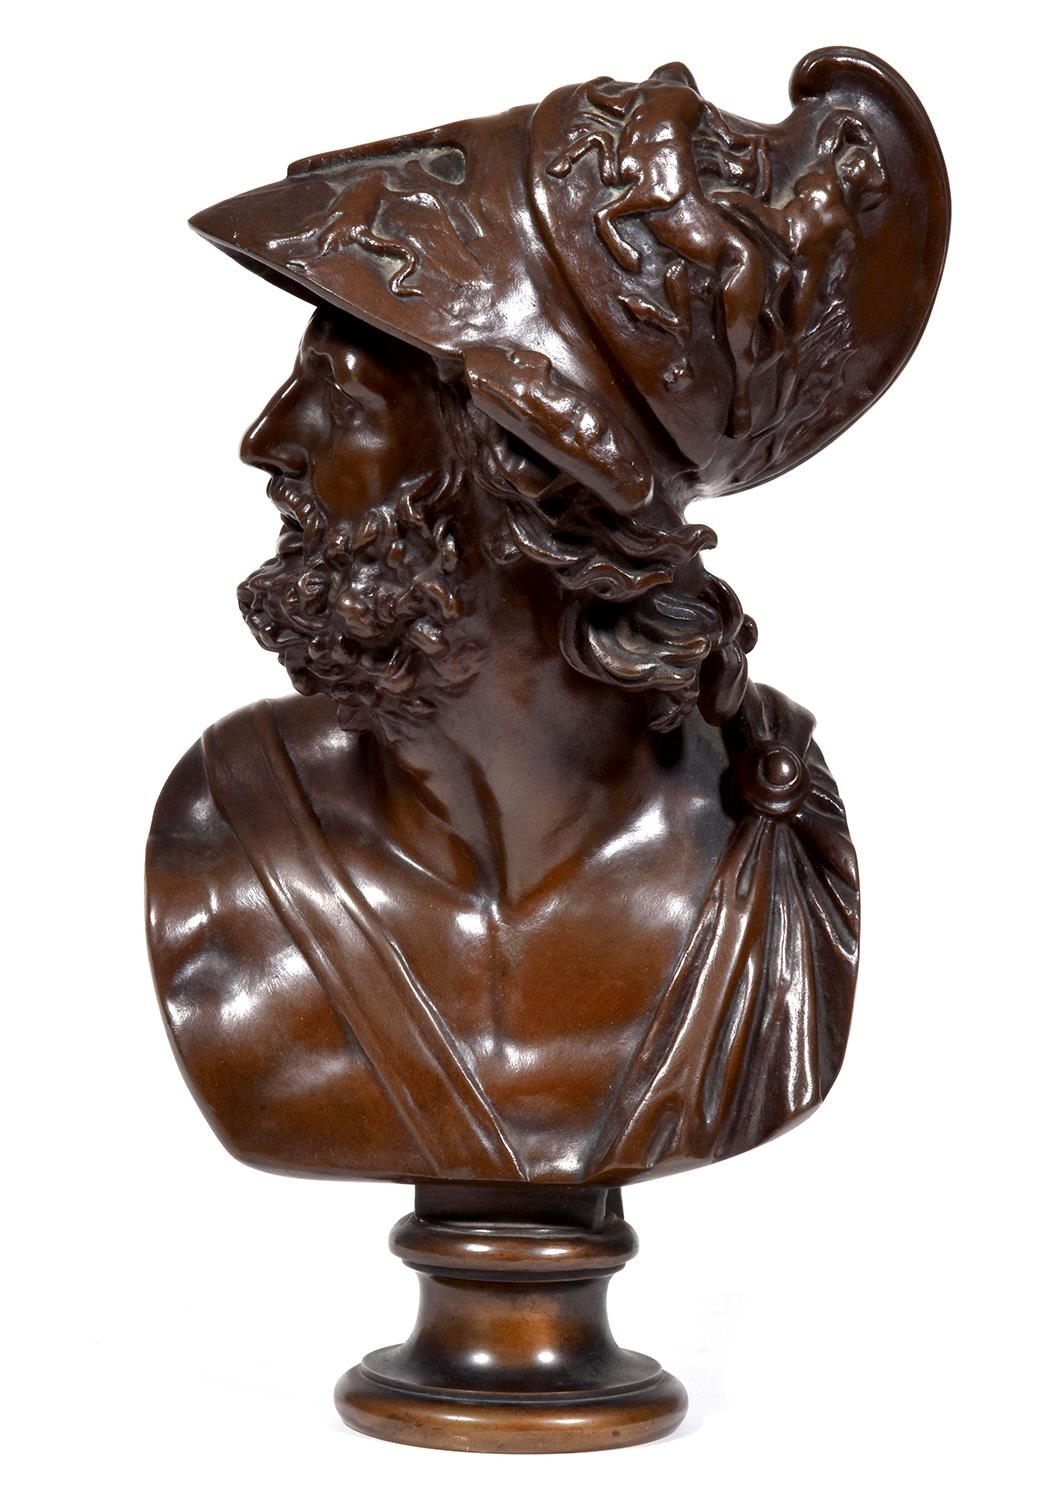 A bronze bust of Ajax after the Antique, 20th c, cast from a 19th c model by Barbedienne, integral